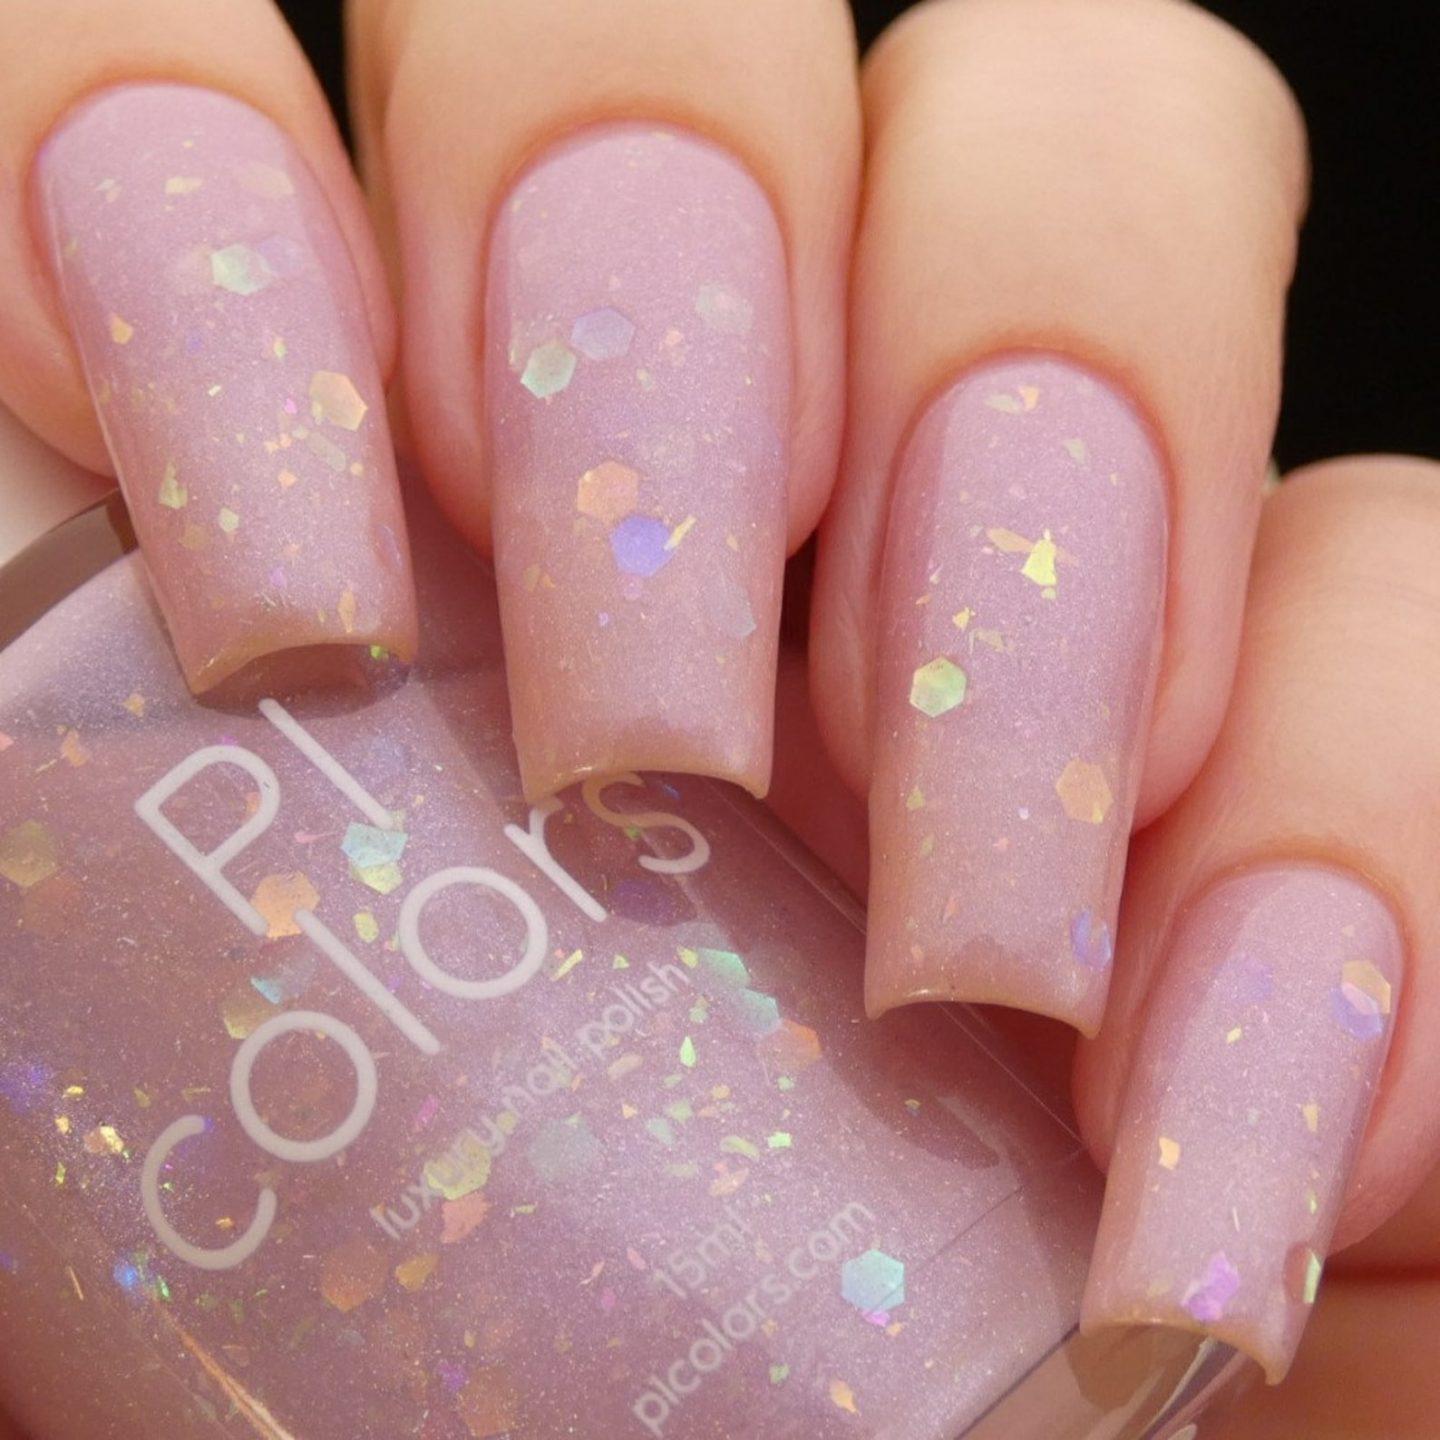 Long pale pink coffin nails with iridescent glitter